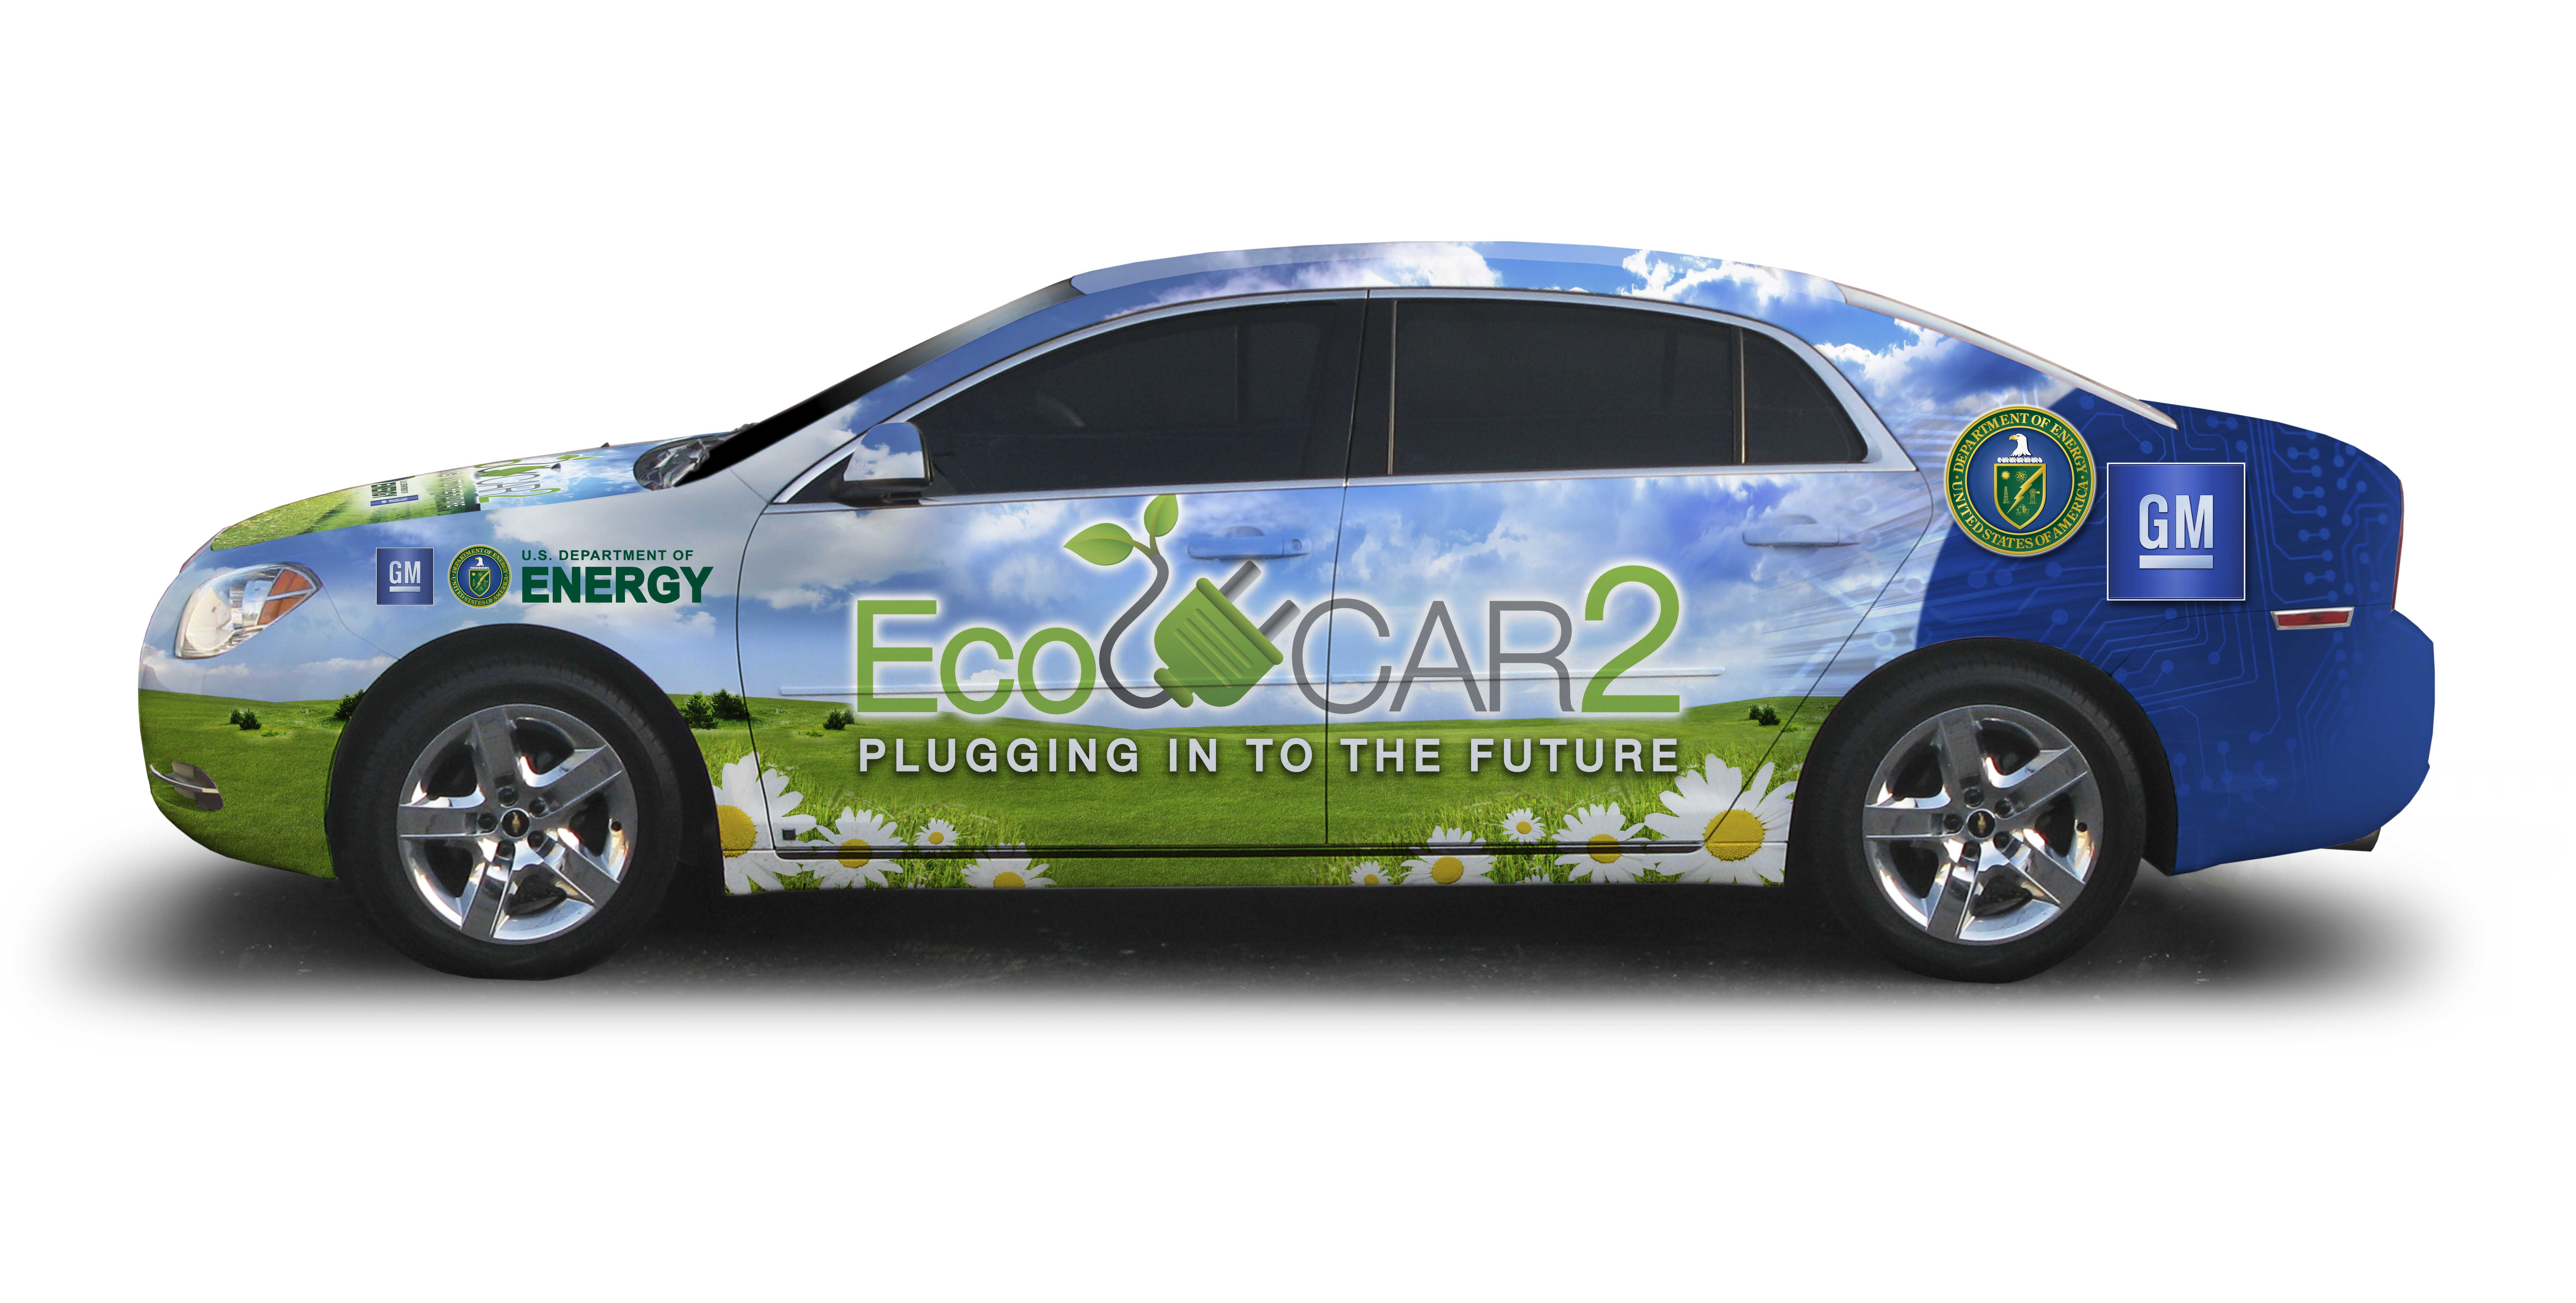 And the EcoCAR 2 Vehicle Will Be… - Ecocar 3 : Ecocar 3